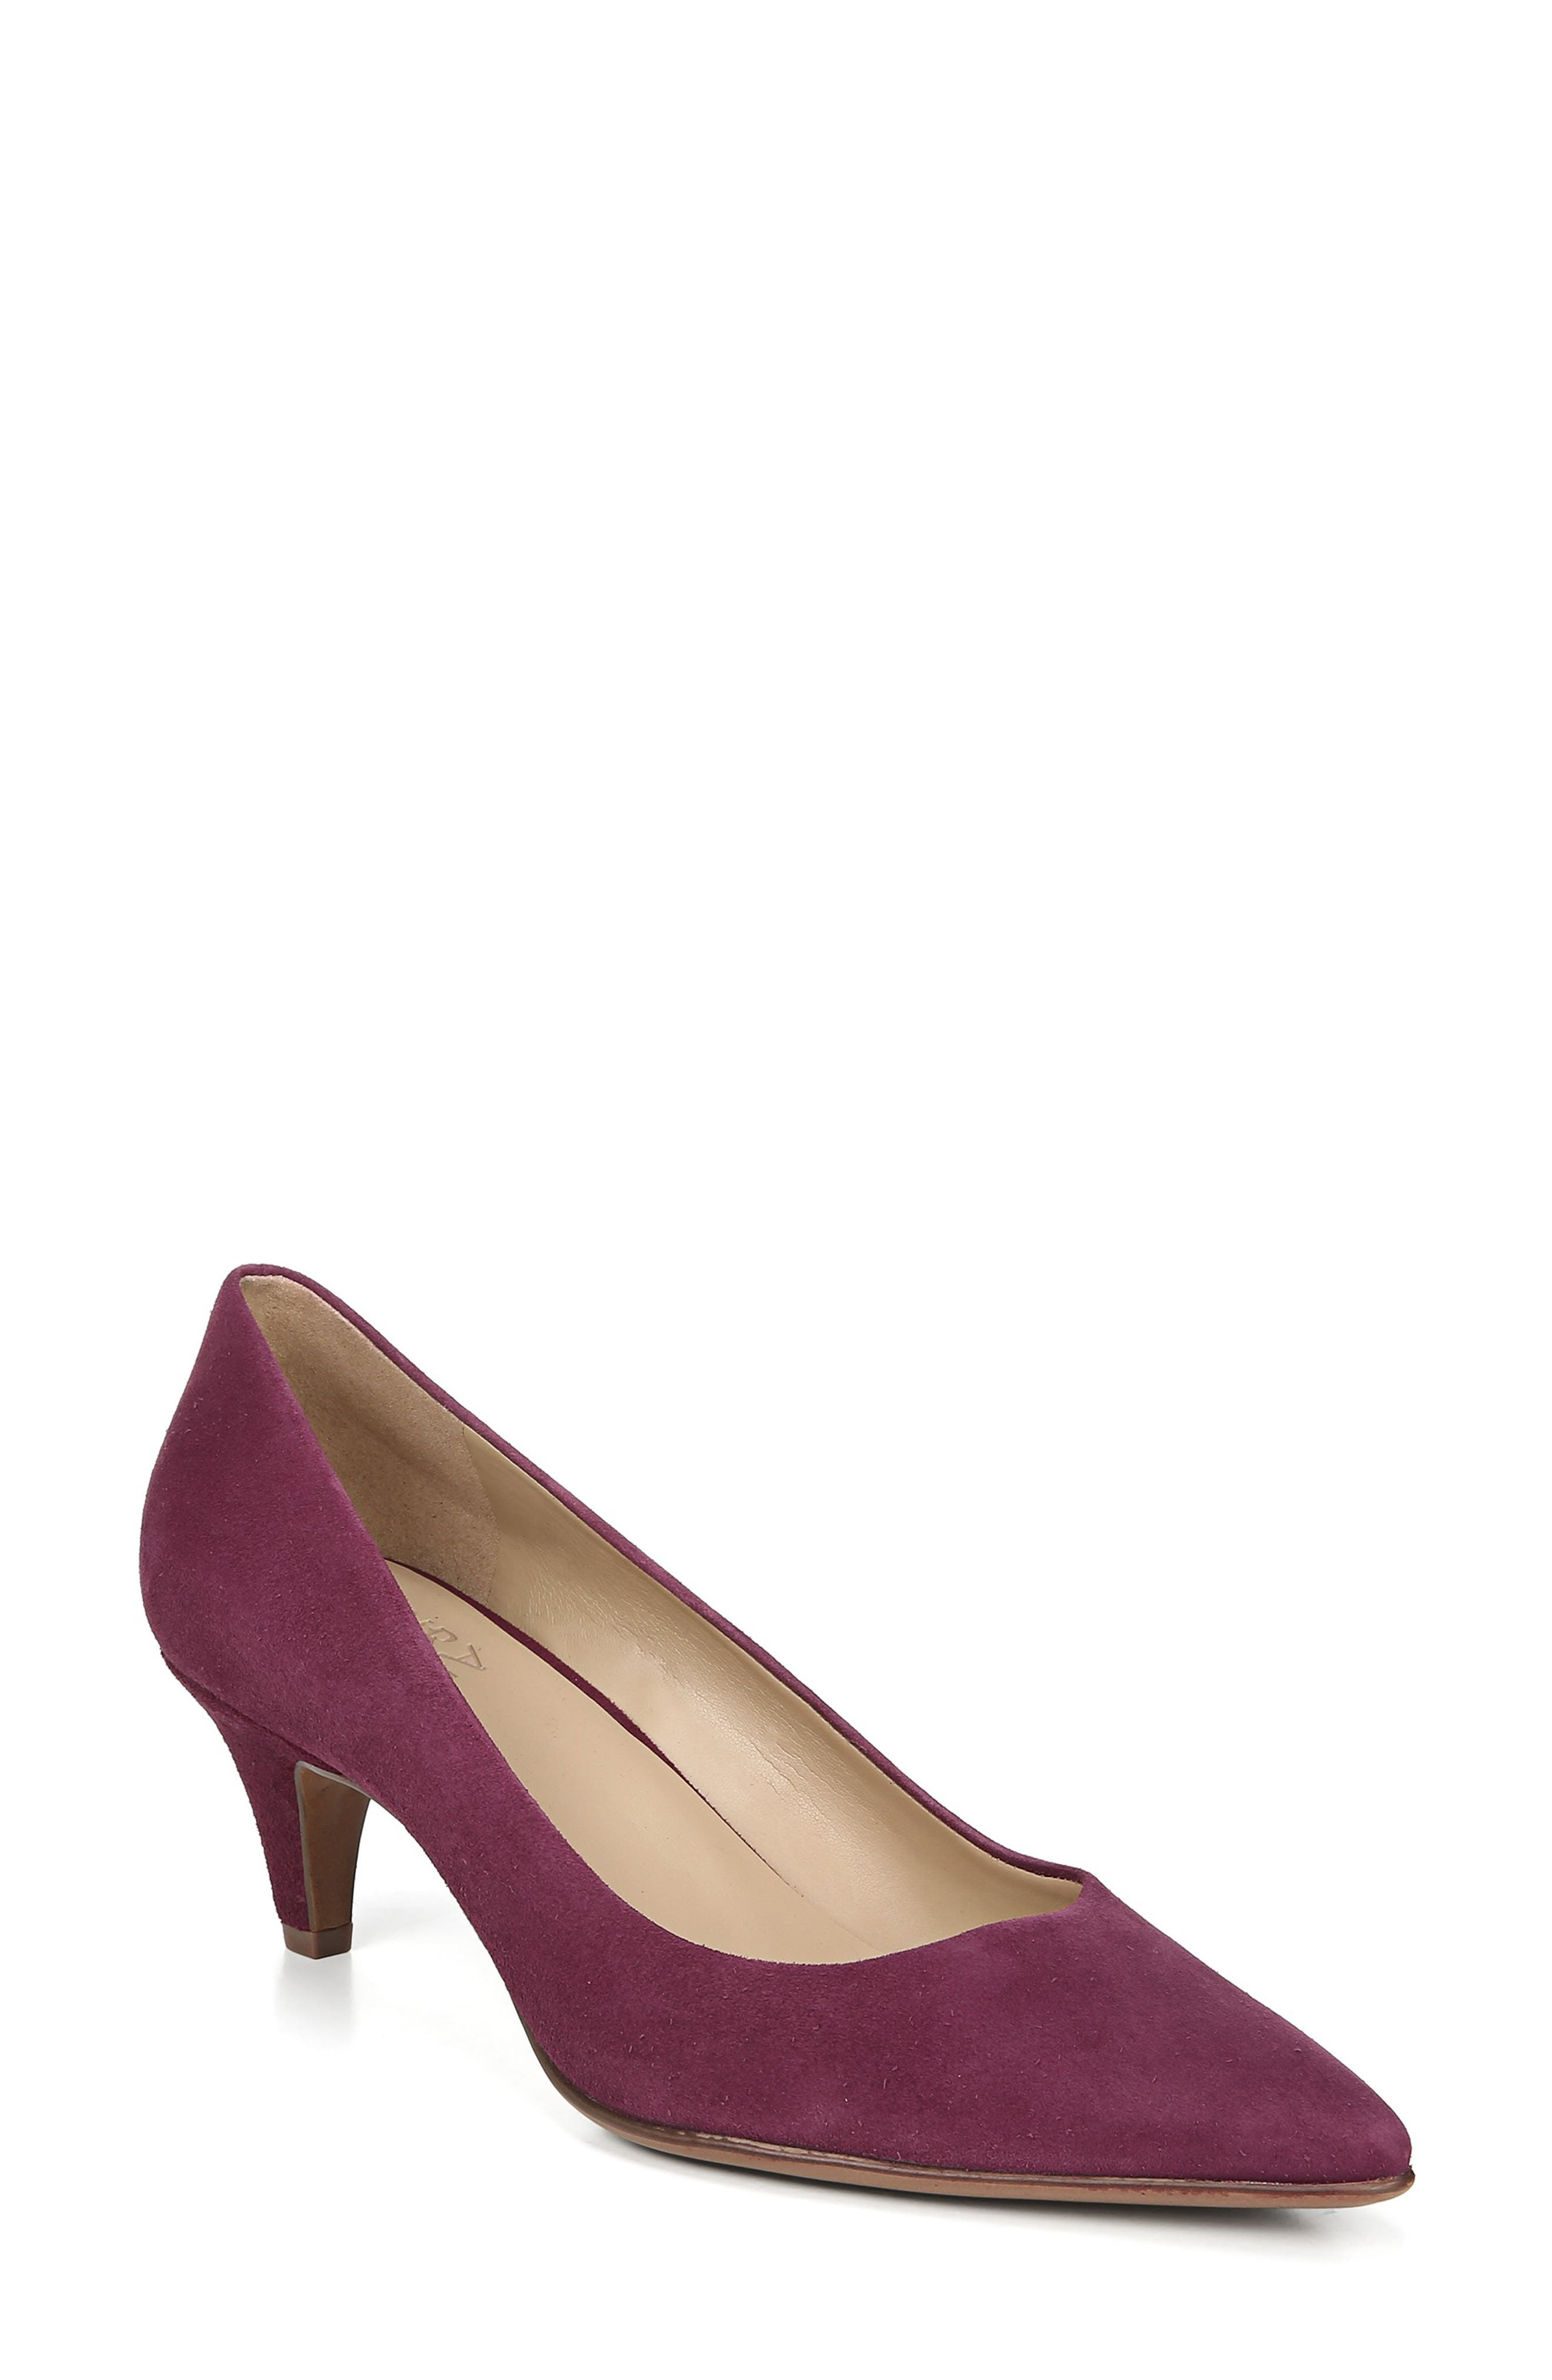 Naturalizer Beverly Pump, Pink